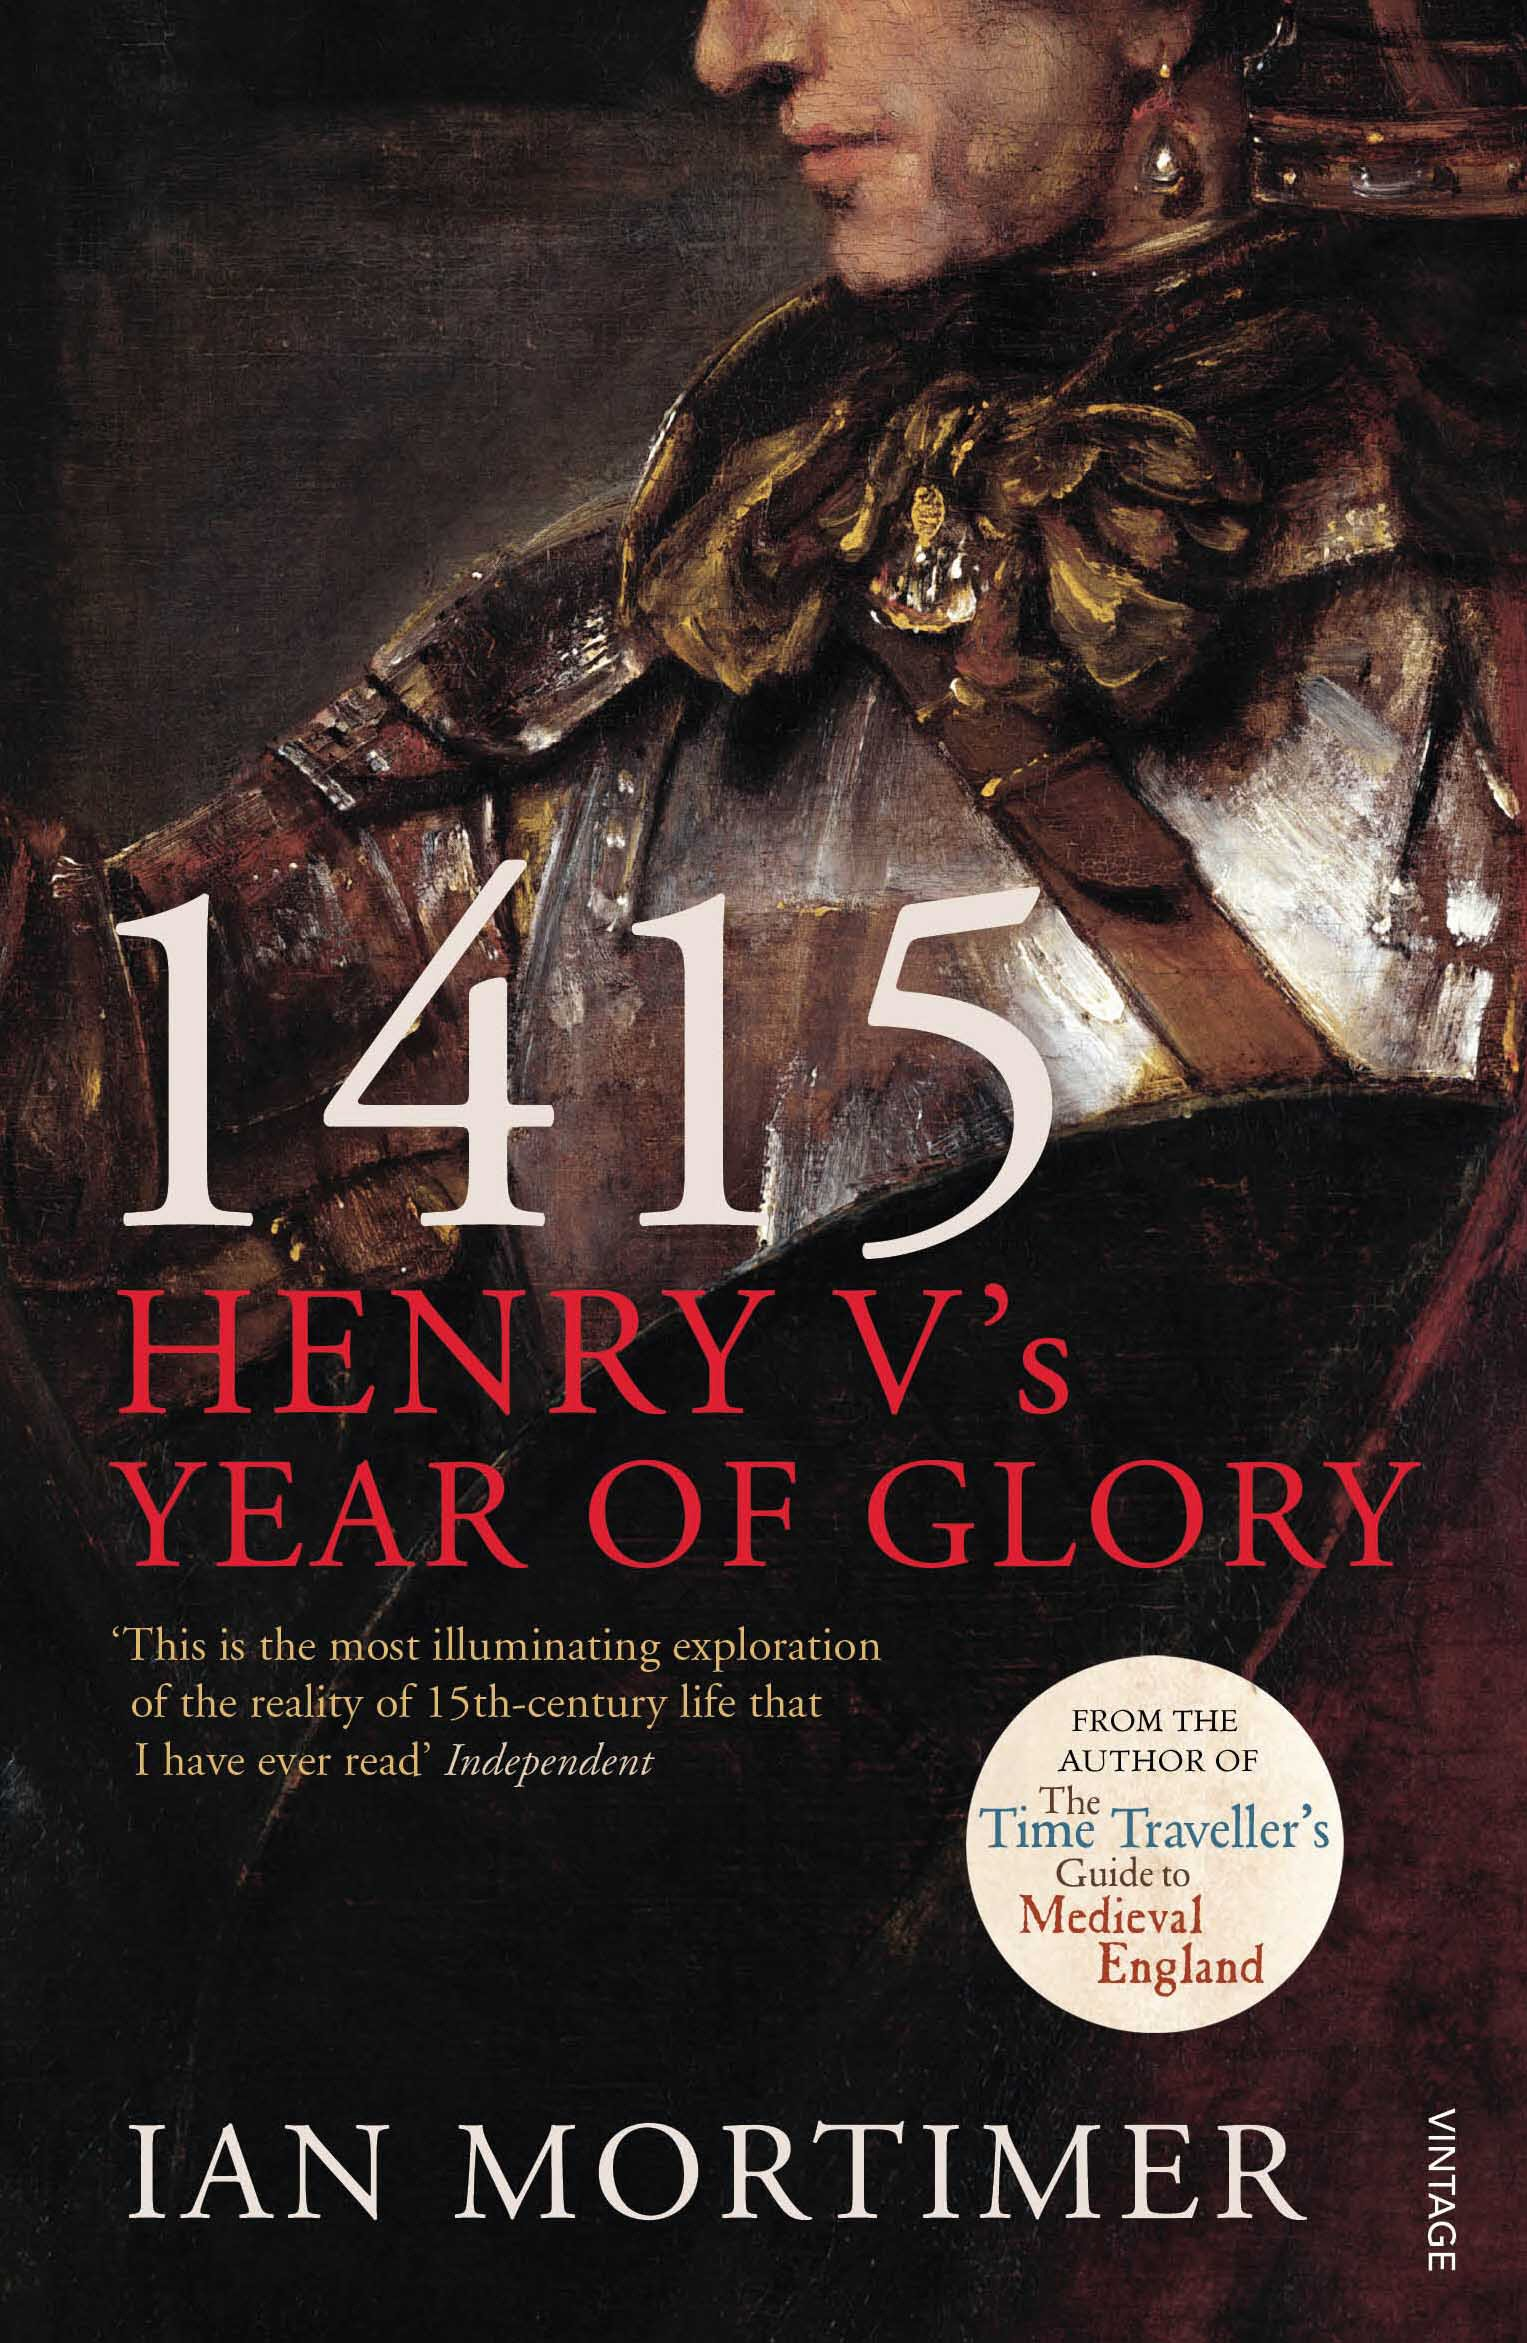 1415: Henry V's Year of Glory: Ian Mortimer: 9781845950972: Amazon.com:  Books